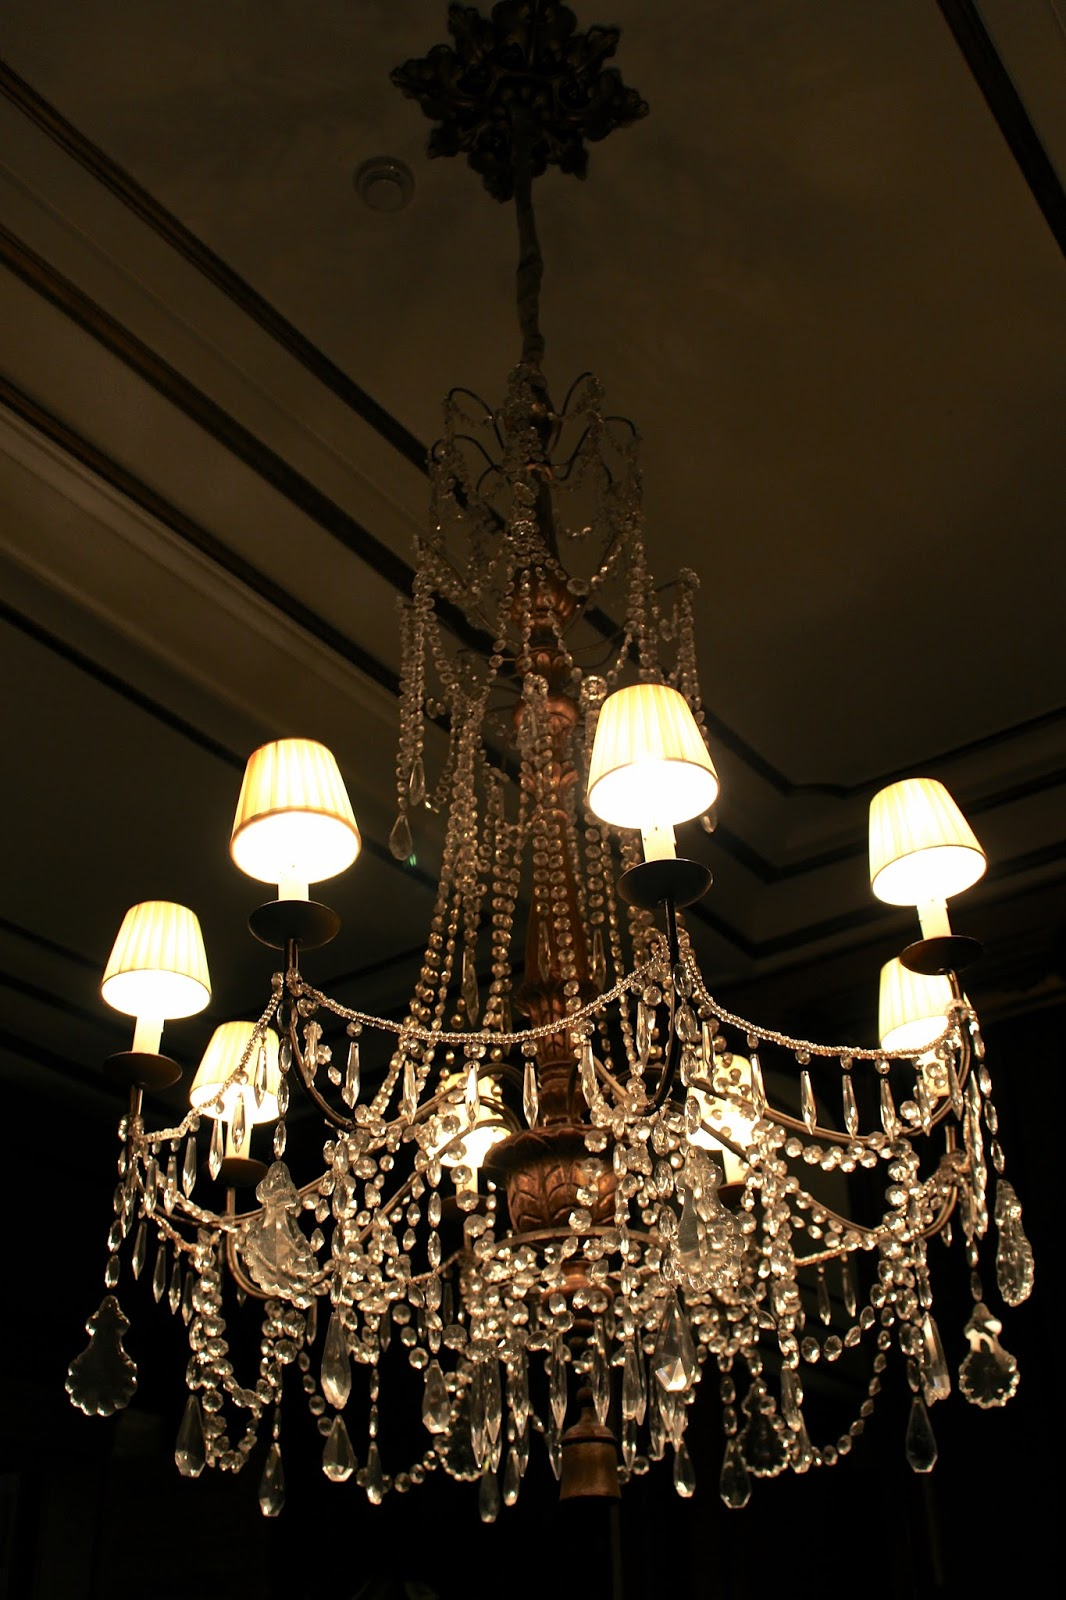 Luxurious chandelier with lamps at Hotel Dukes' Palace